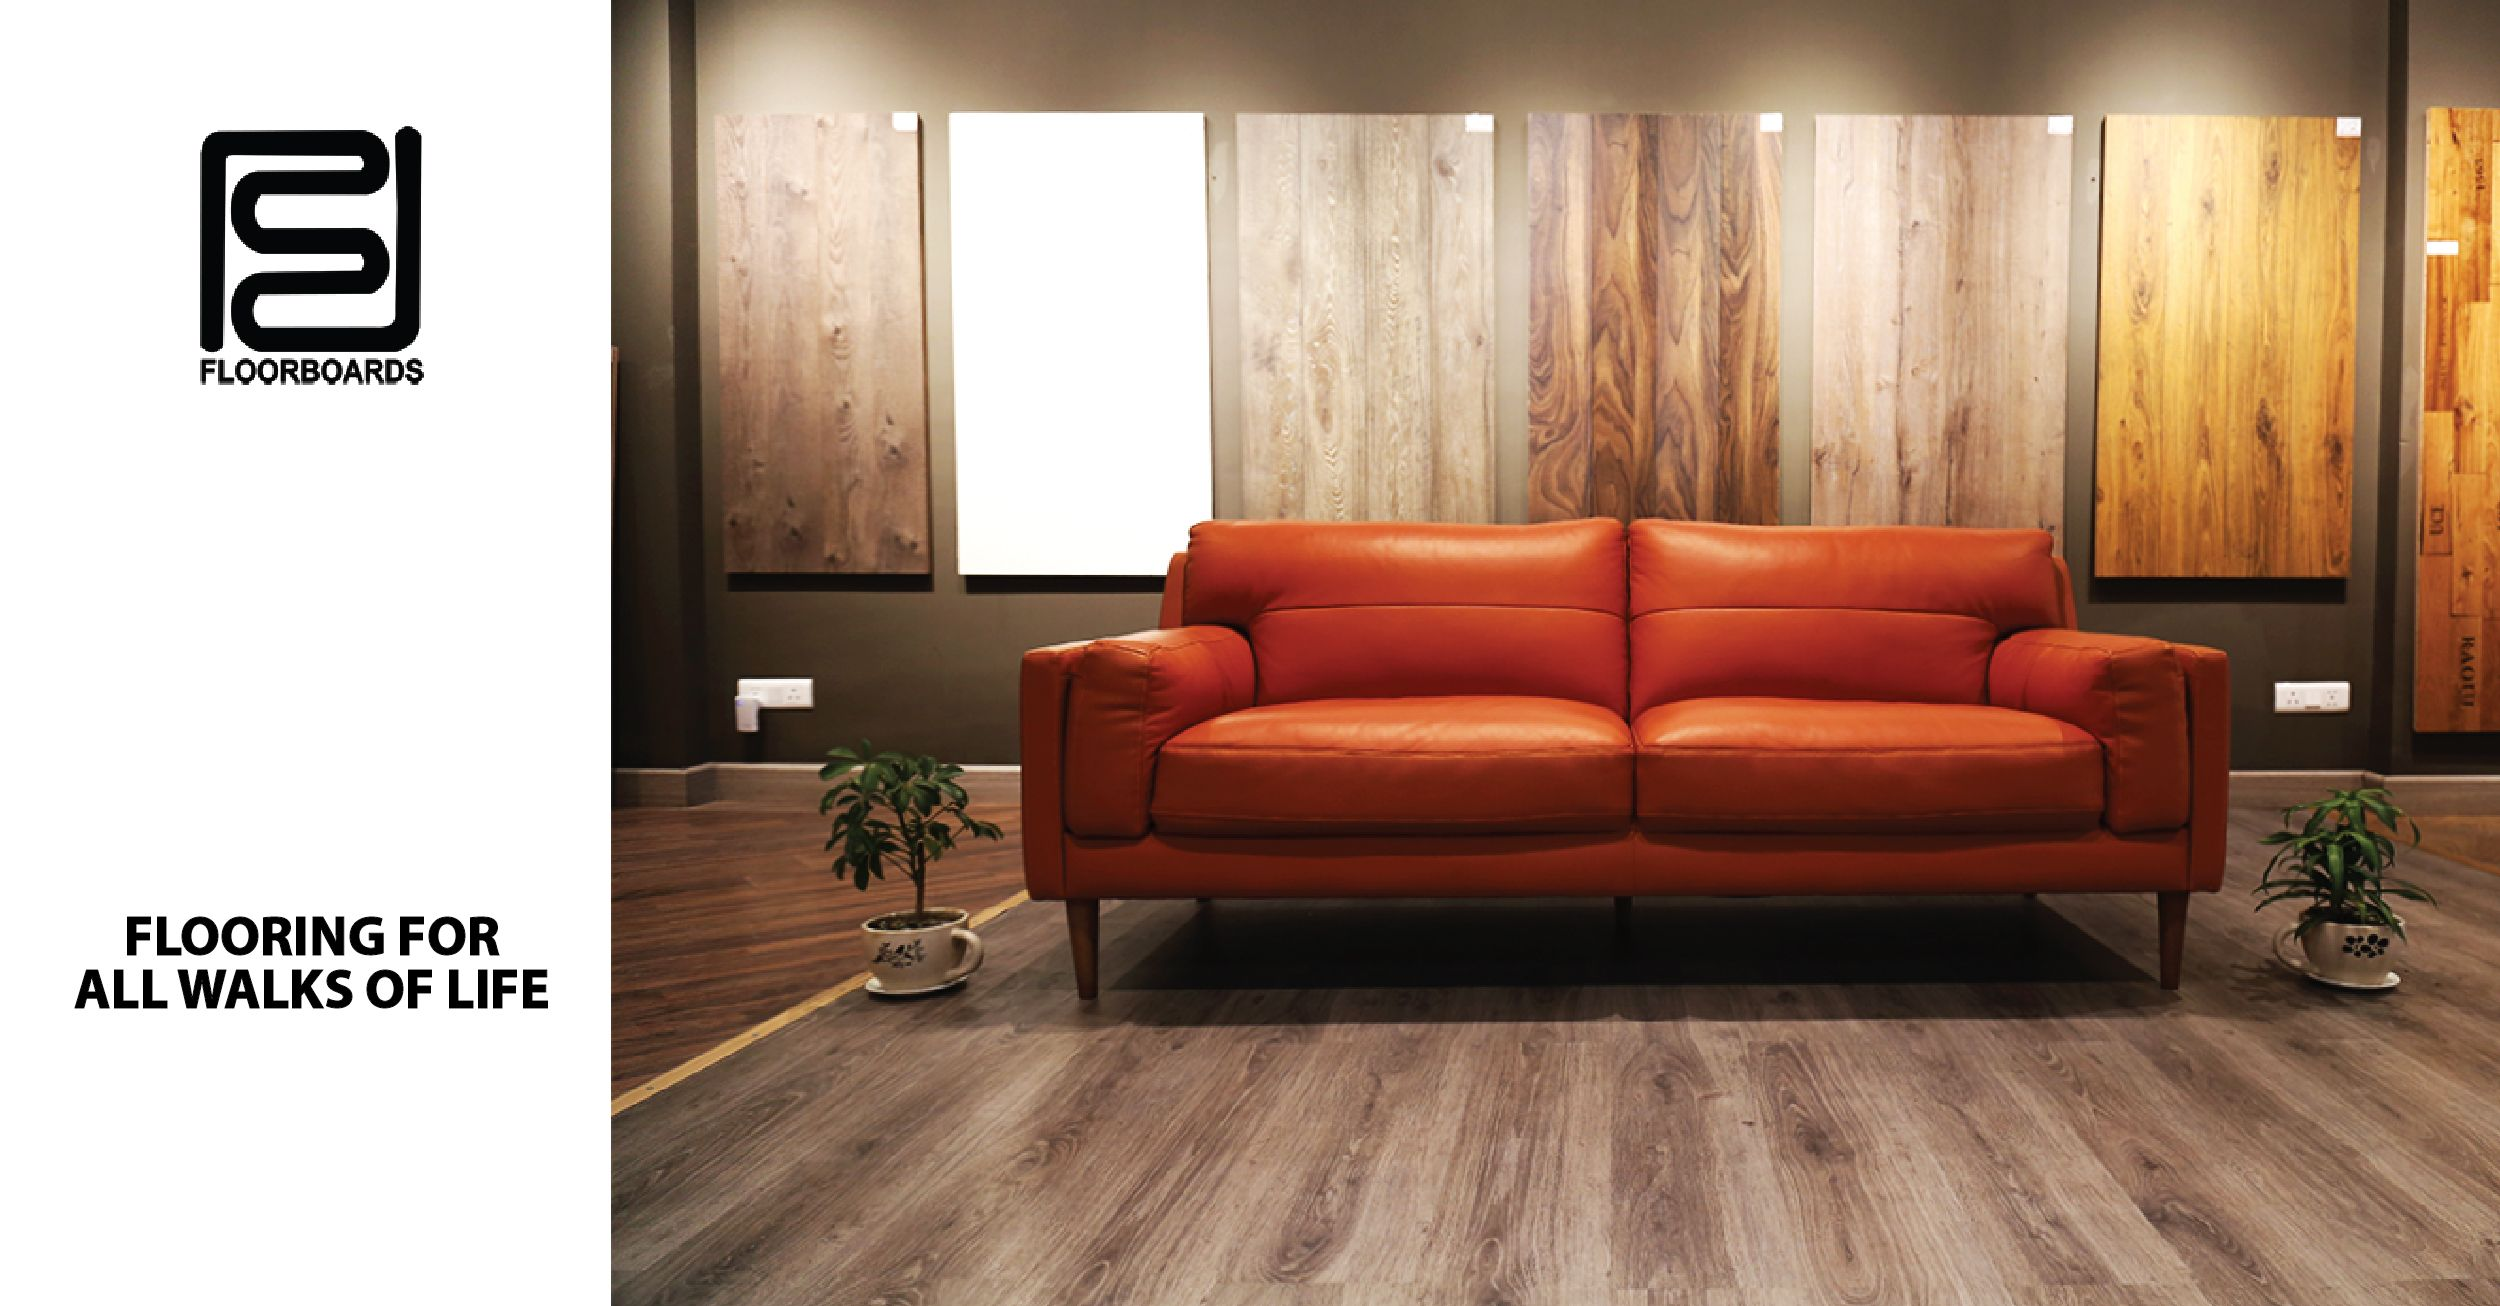 We provide the range of utility flooring that is durable